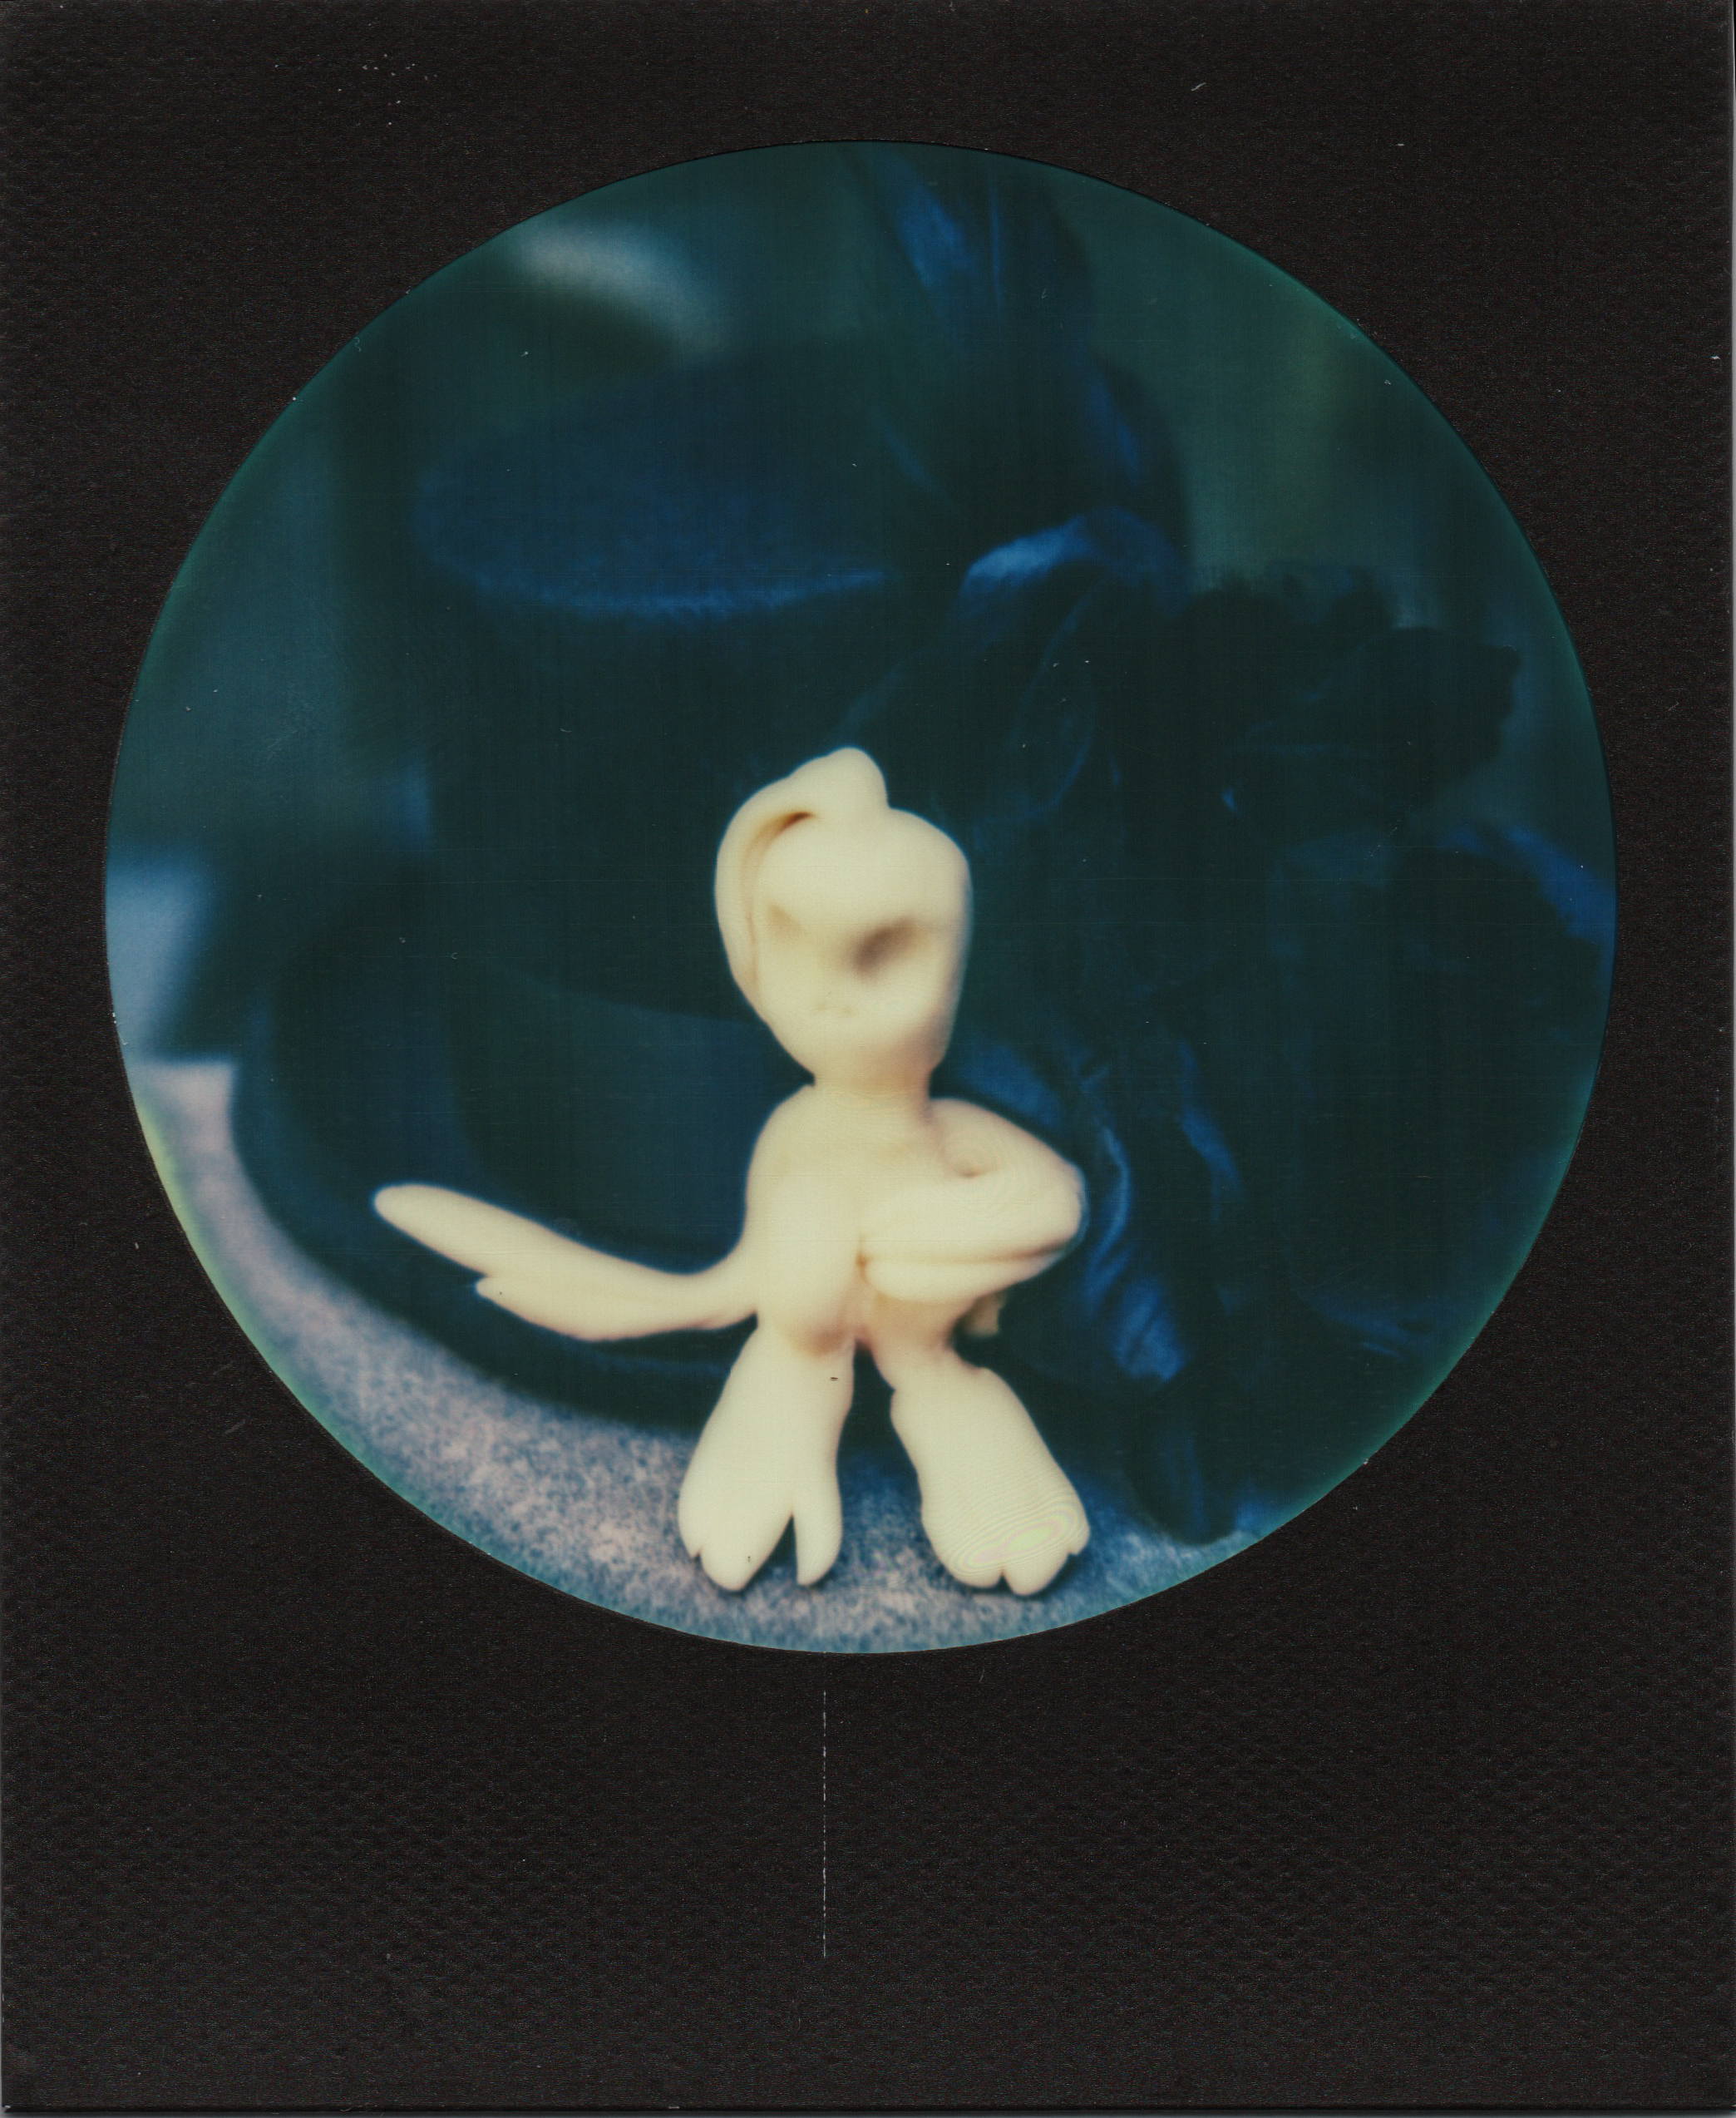 Alien Invasion | Polaroid sx70 | Impossible Round Black Frame | Karin Klaus